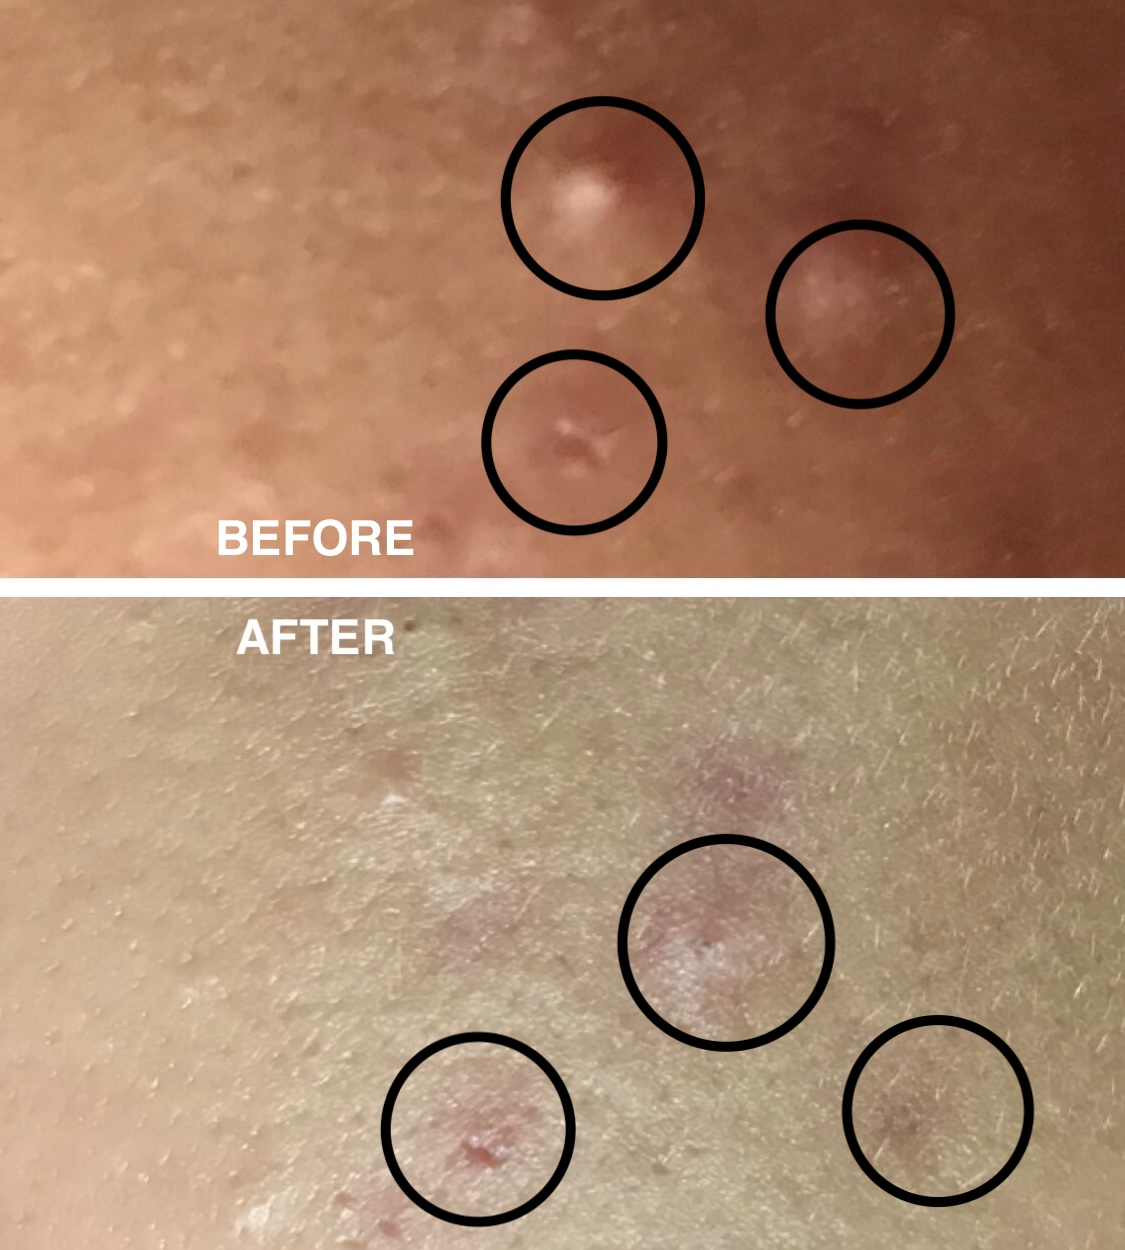 - As you can see, this dramatically reduced my inflamed cystic acne in just one night. I was concerned about the safety of using this product for way more than the amount of time recommended, but after some research, It seems that a lot of people actually use it this way. Plus the product itself is made of 60% of the same material used in the pink spot which is used overnight. Either way, I recommend trying it on just one pimple for a few days and seeing how your skin reacts.These pictures are just one day apart, before and after use (I'm sorry for the quality but I tried it under natural lighting and during the night it's pretty dark... obviously. And the angles differ in the first picture a bit). As you can see, most of the puss from the acne came out. The whole process also sped up the healing and there was no need for an abrasive extraction.